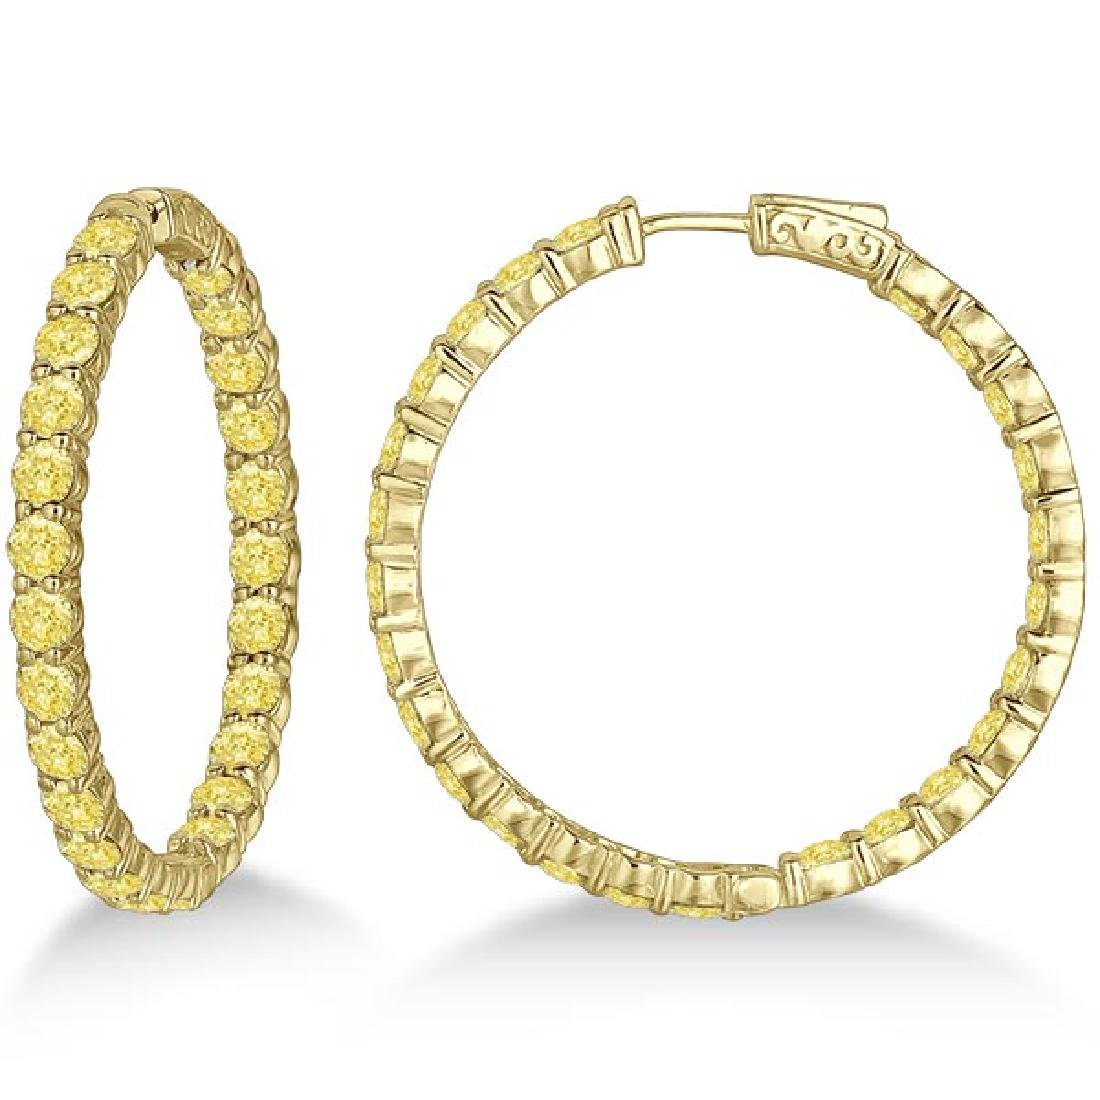 Fancy Yellow Canary Diamond Hoop Earrings 14k Yellow Go